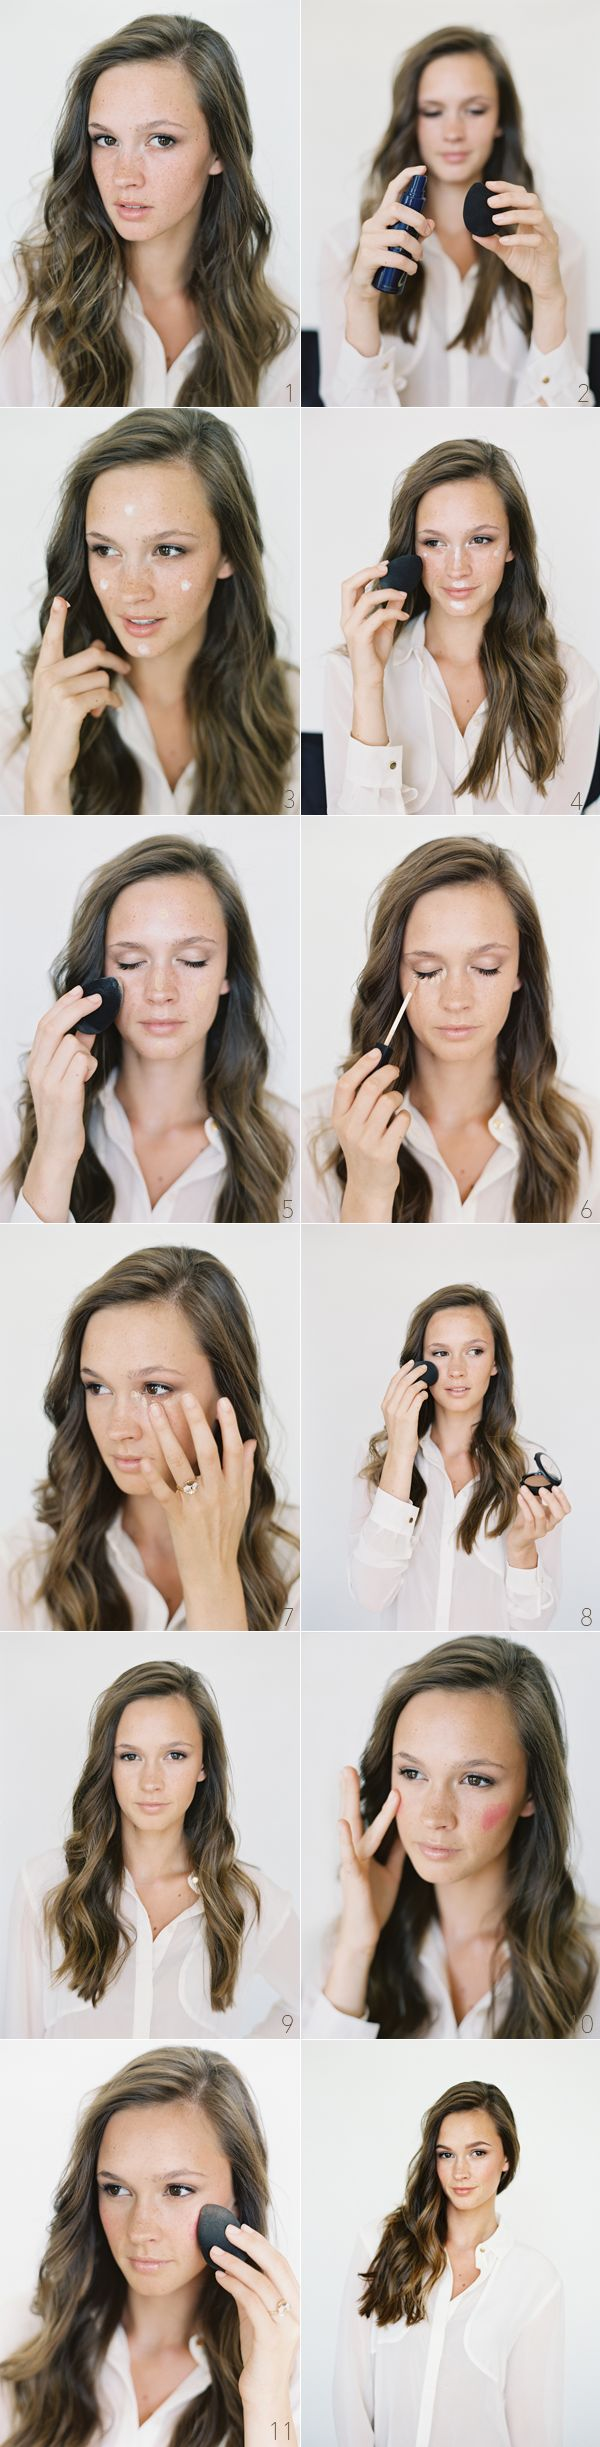 how-apply-foundation-with-highlighting-and-contouring5